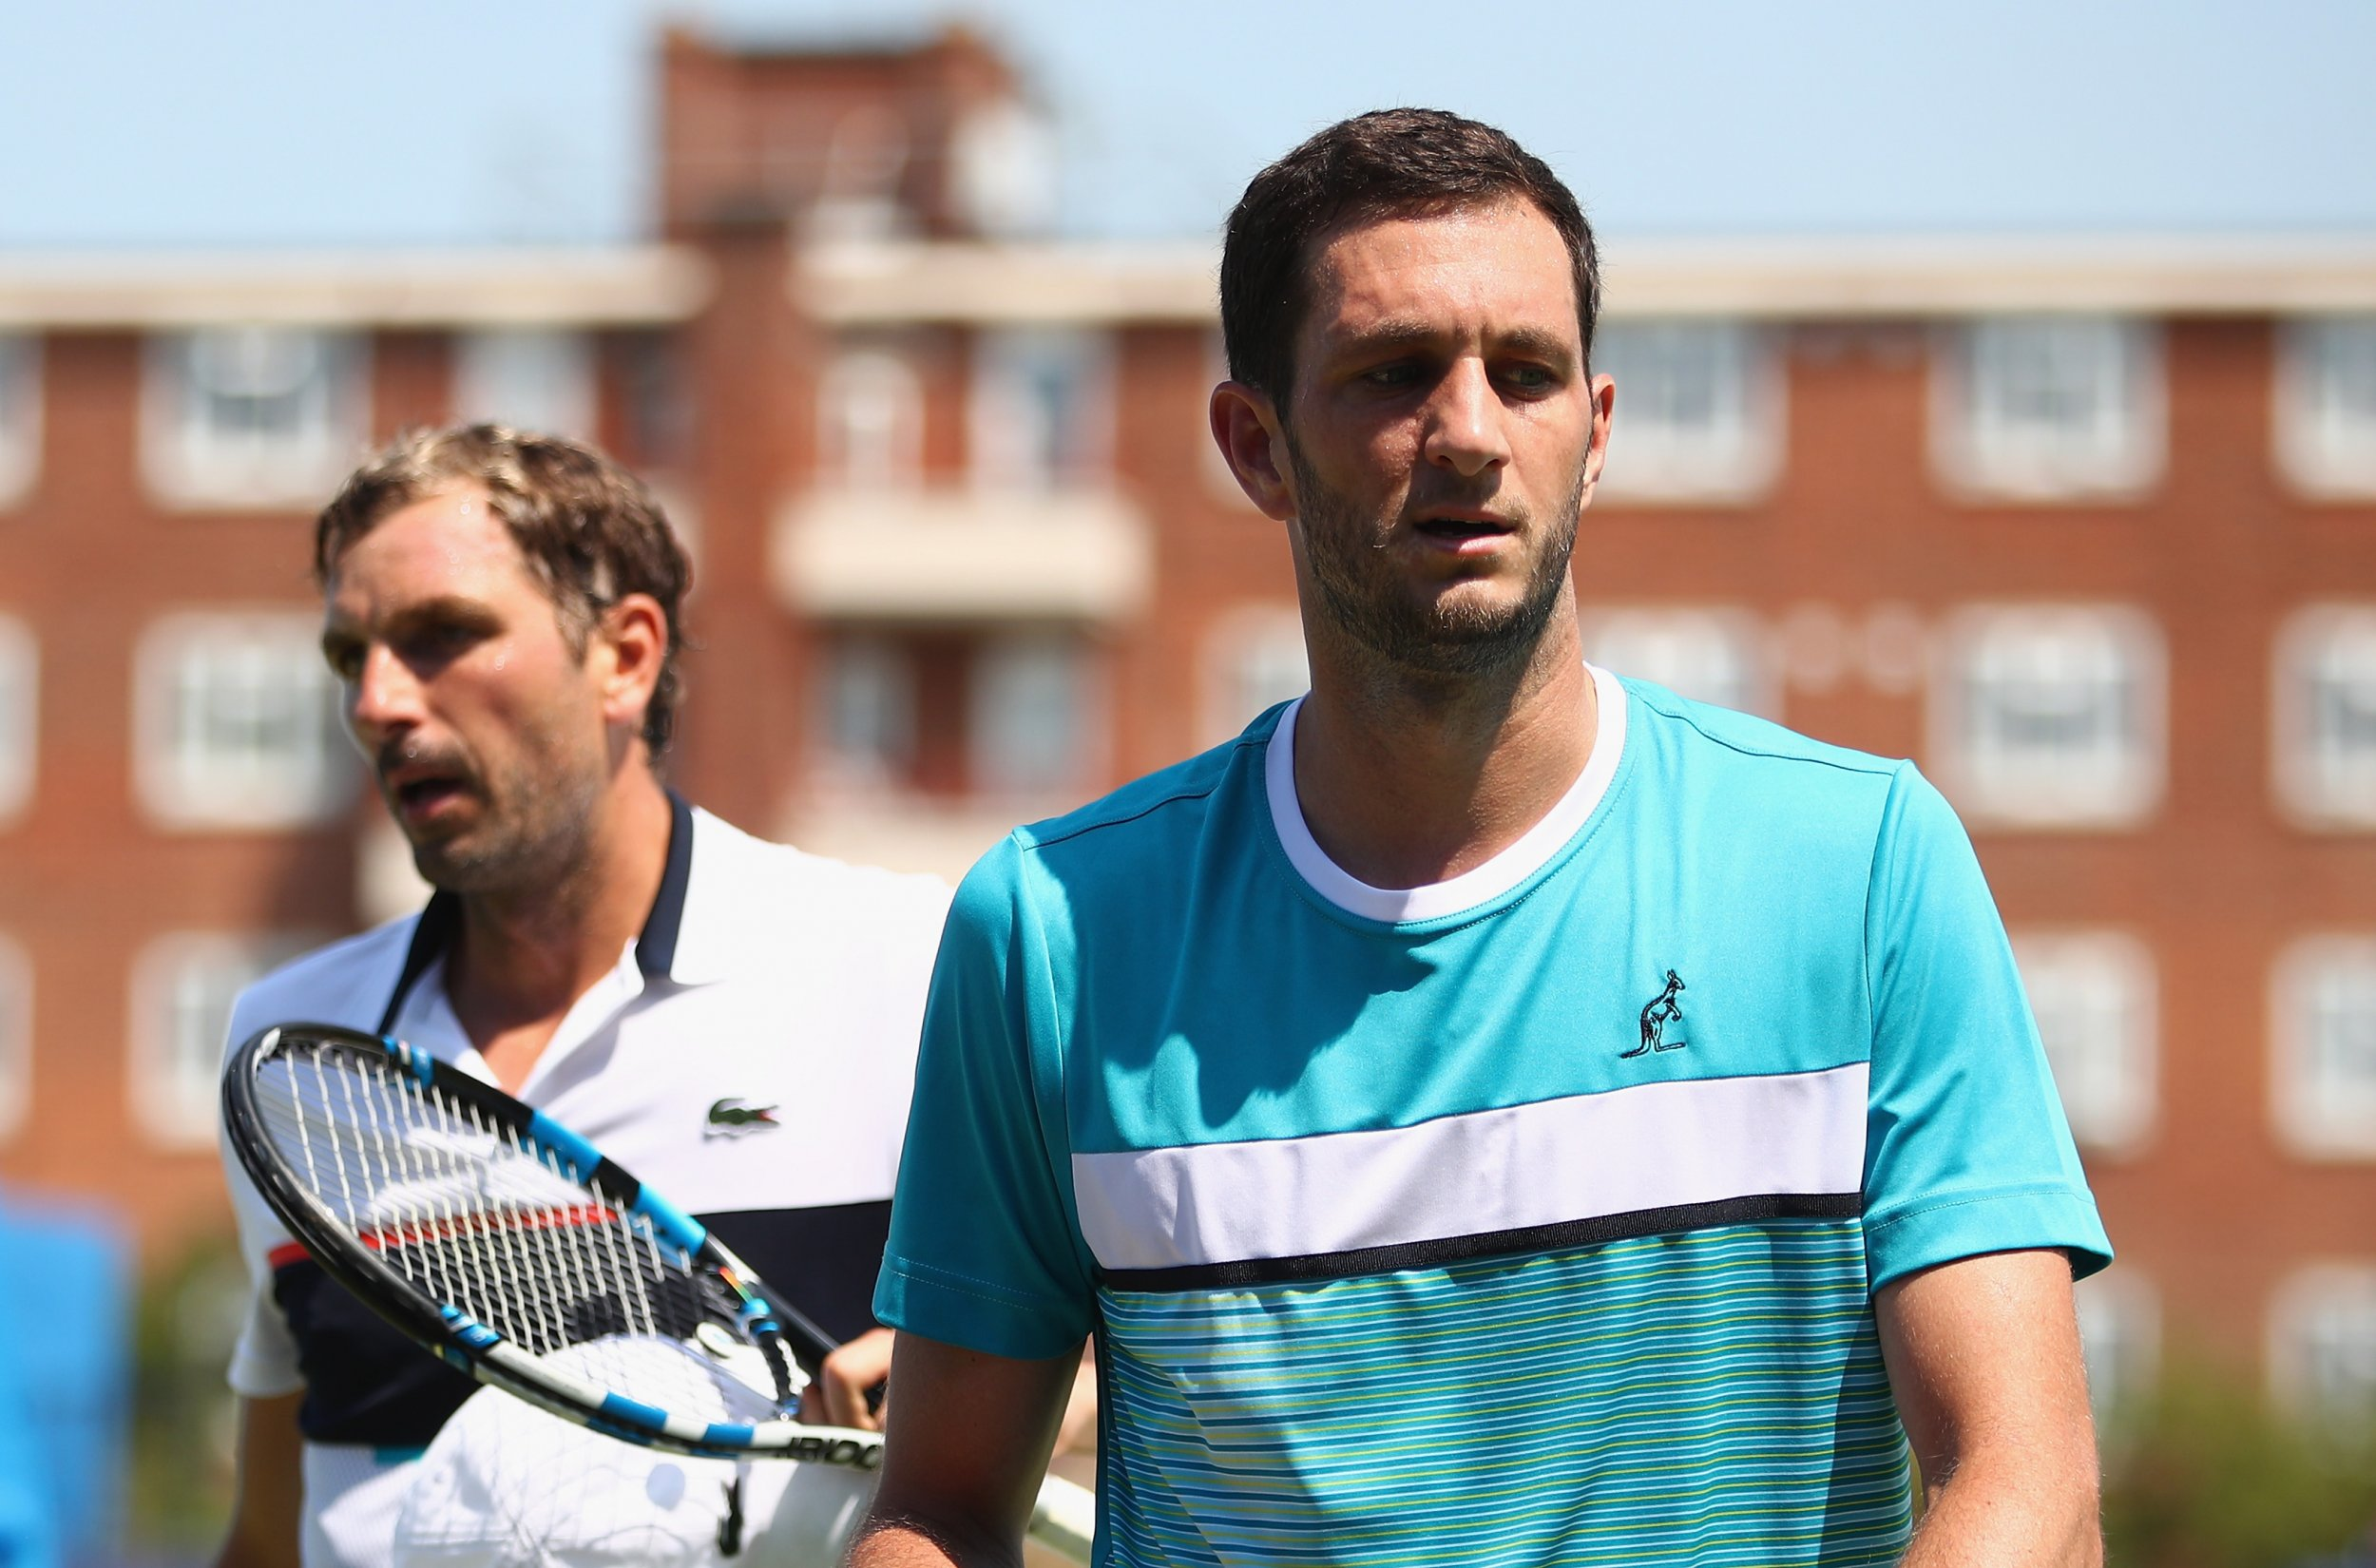 James Ward of Great Britain, right, at Queens Club, London, June 20.